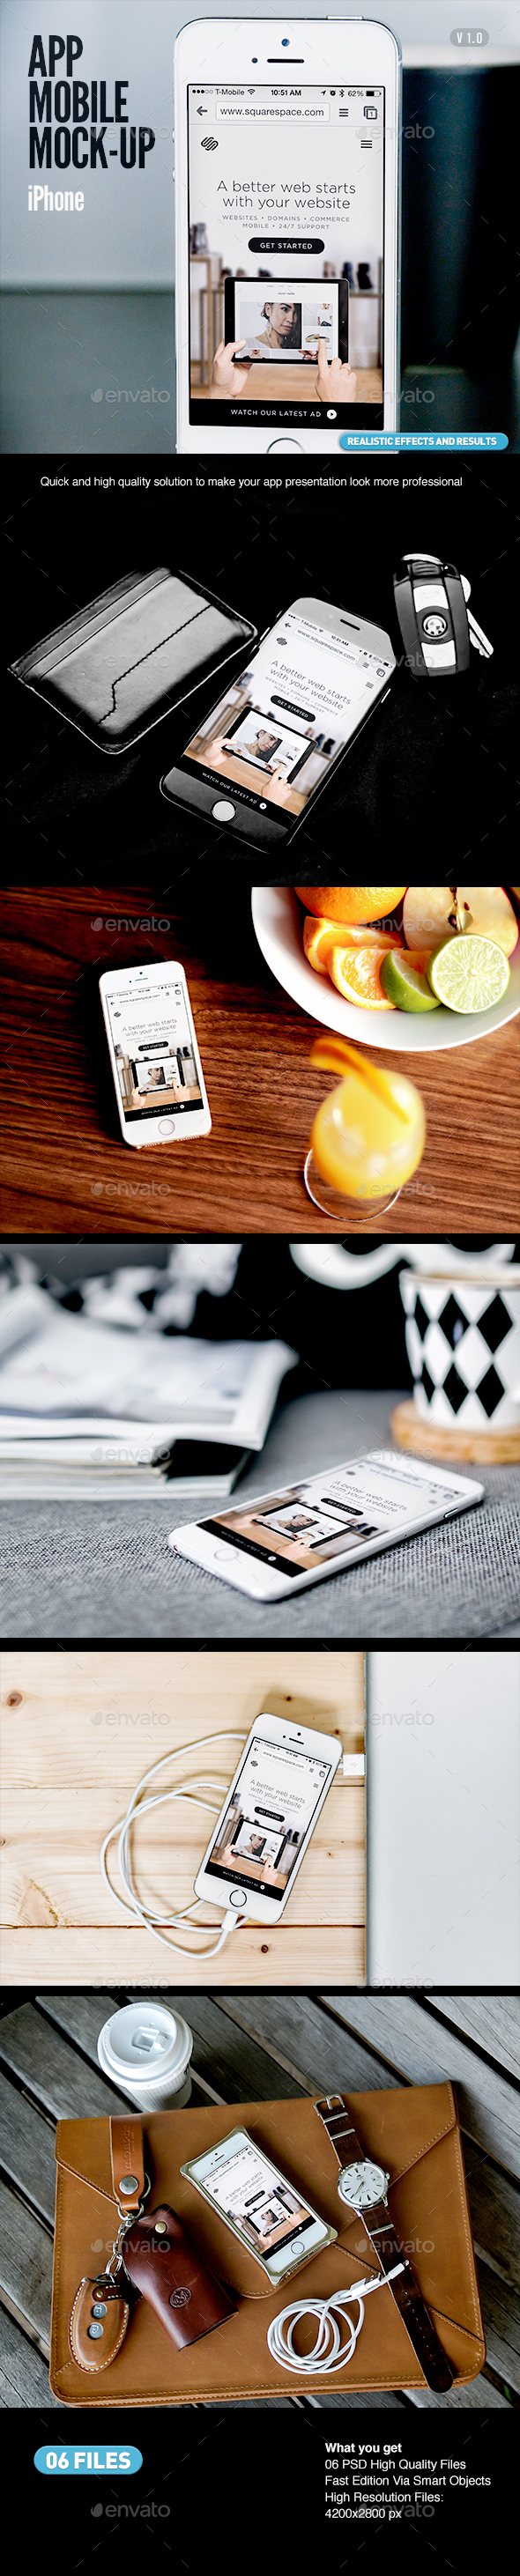 iPhone Mobile App Screen Devices MockUp - Mobile Displays